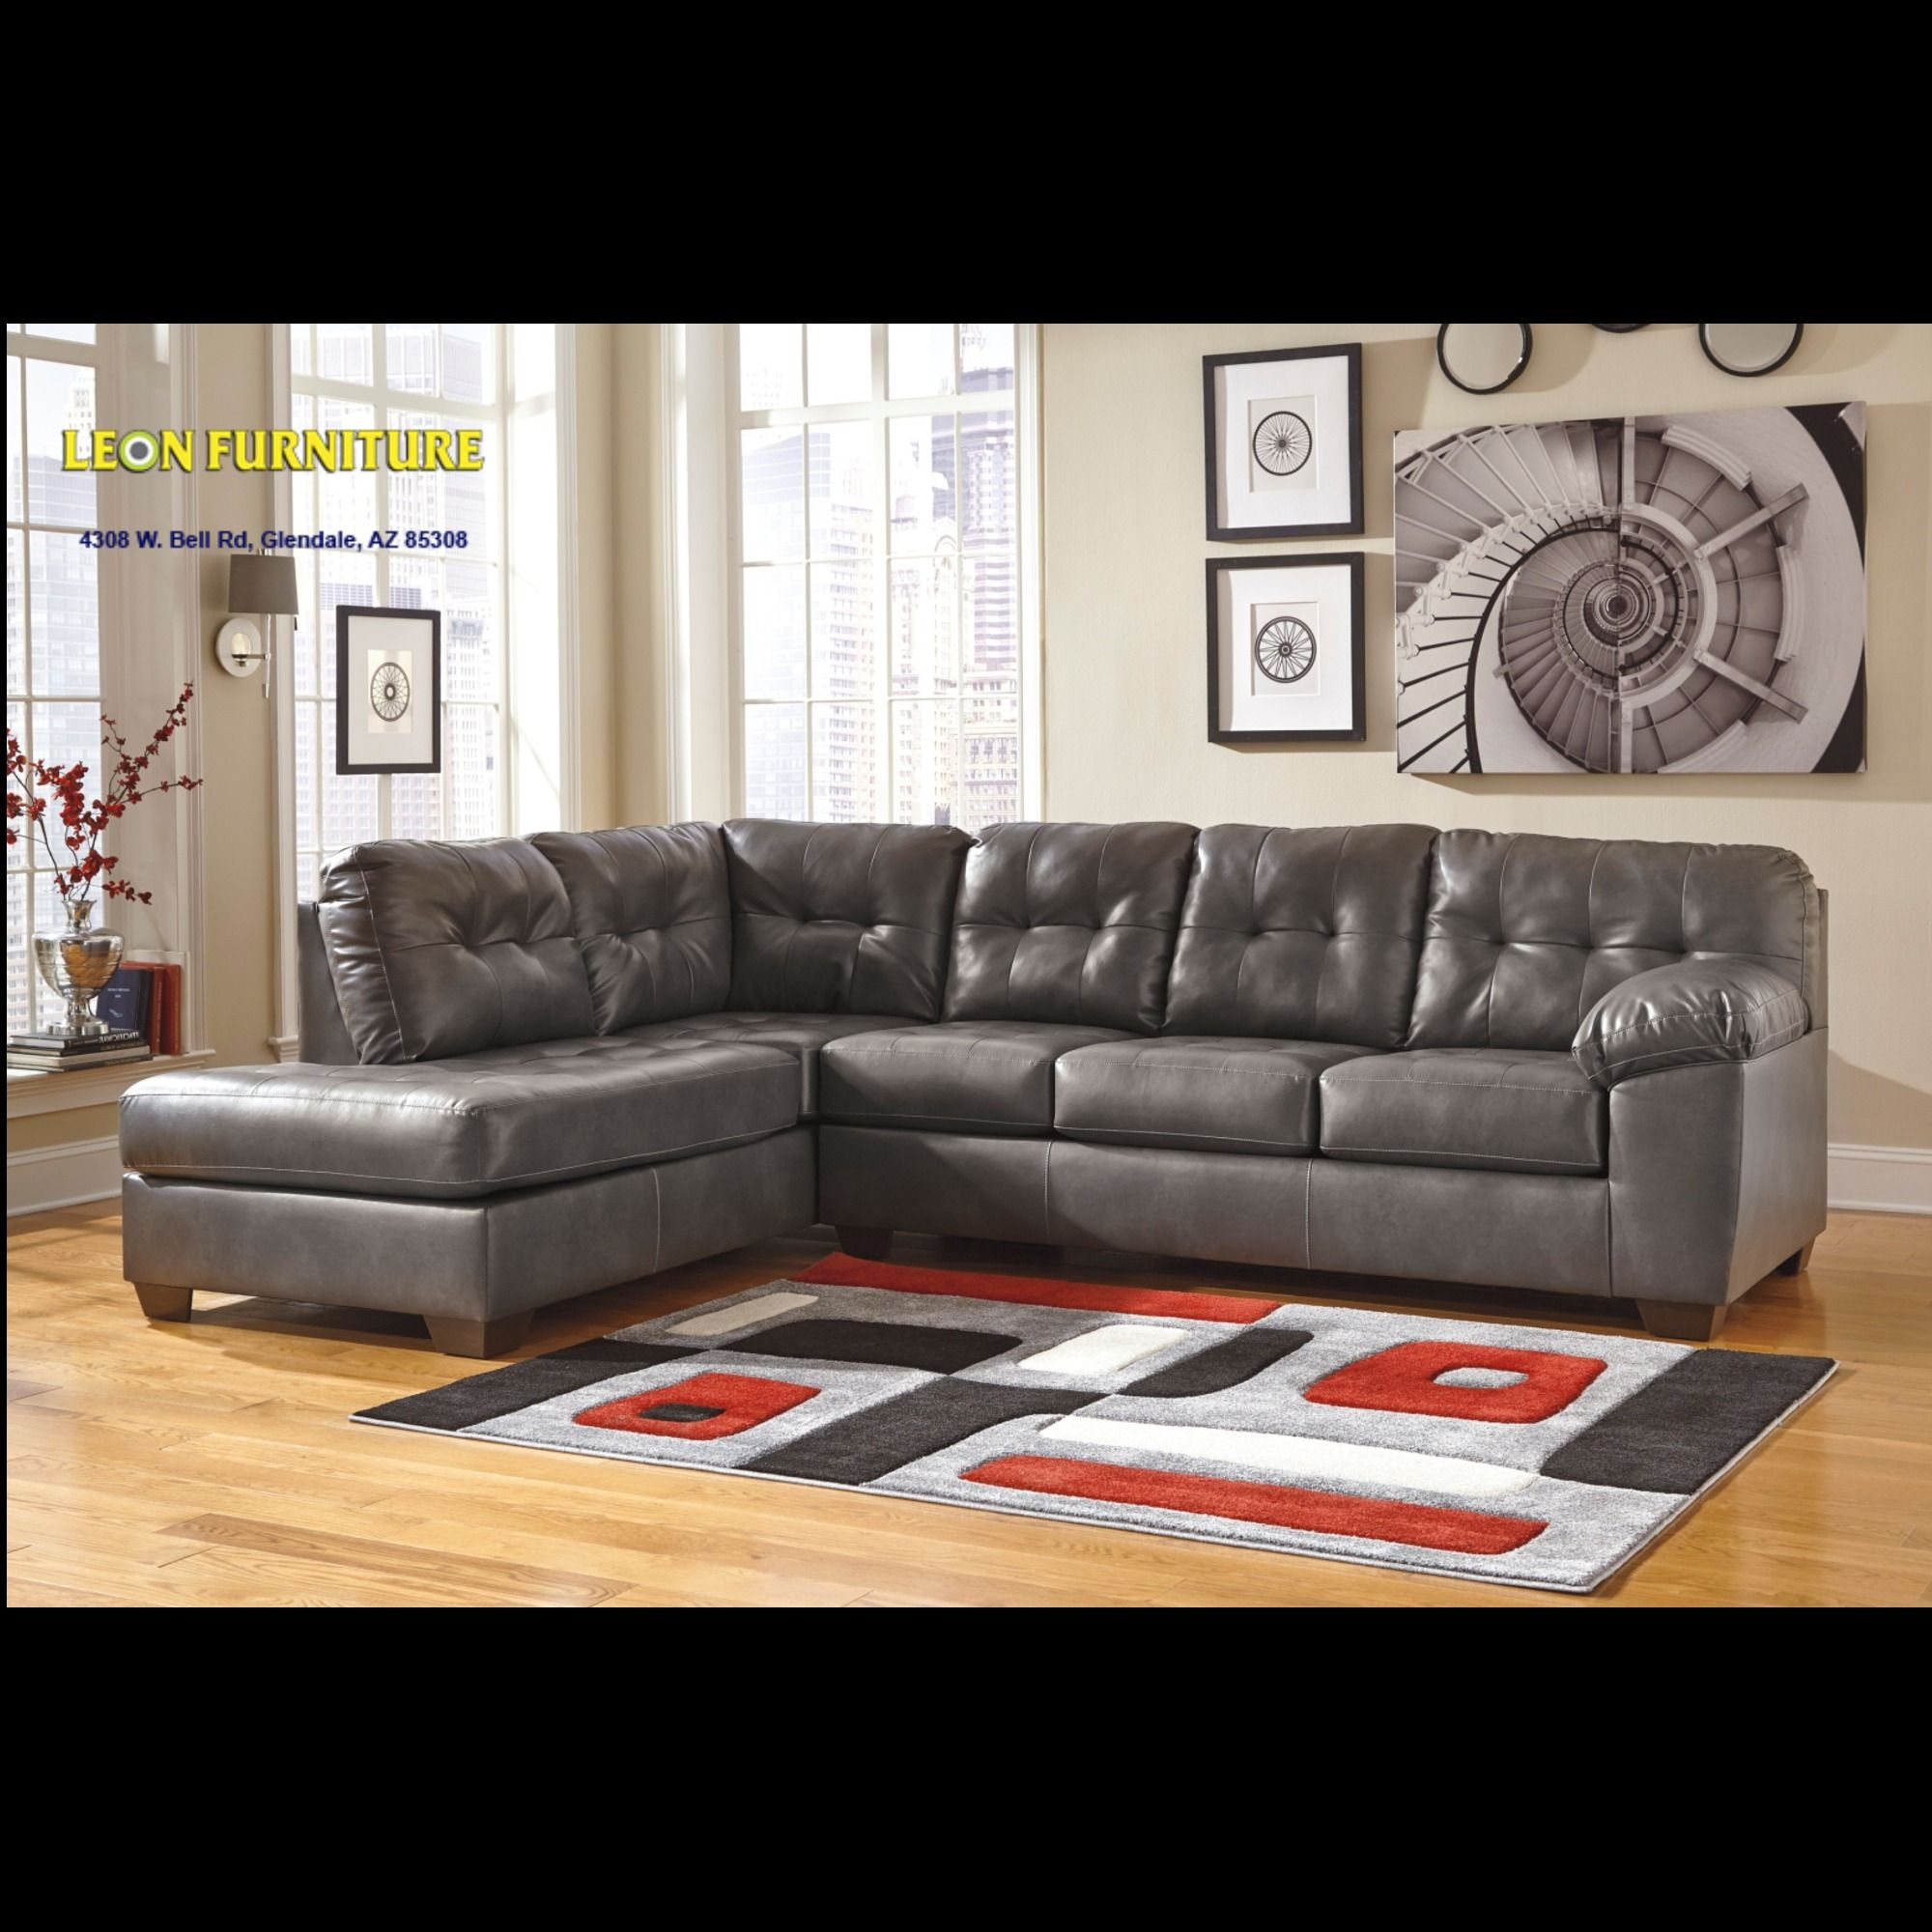 Alliston DuraBlend Gray 20102 2 PC Sectional